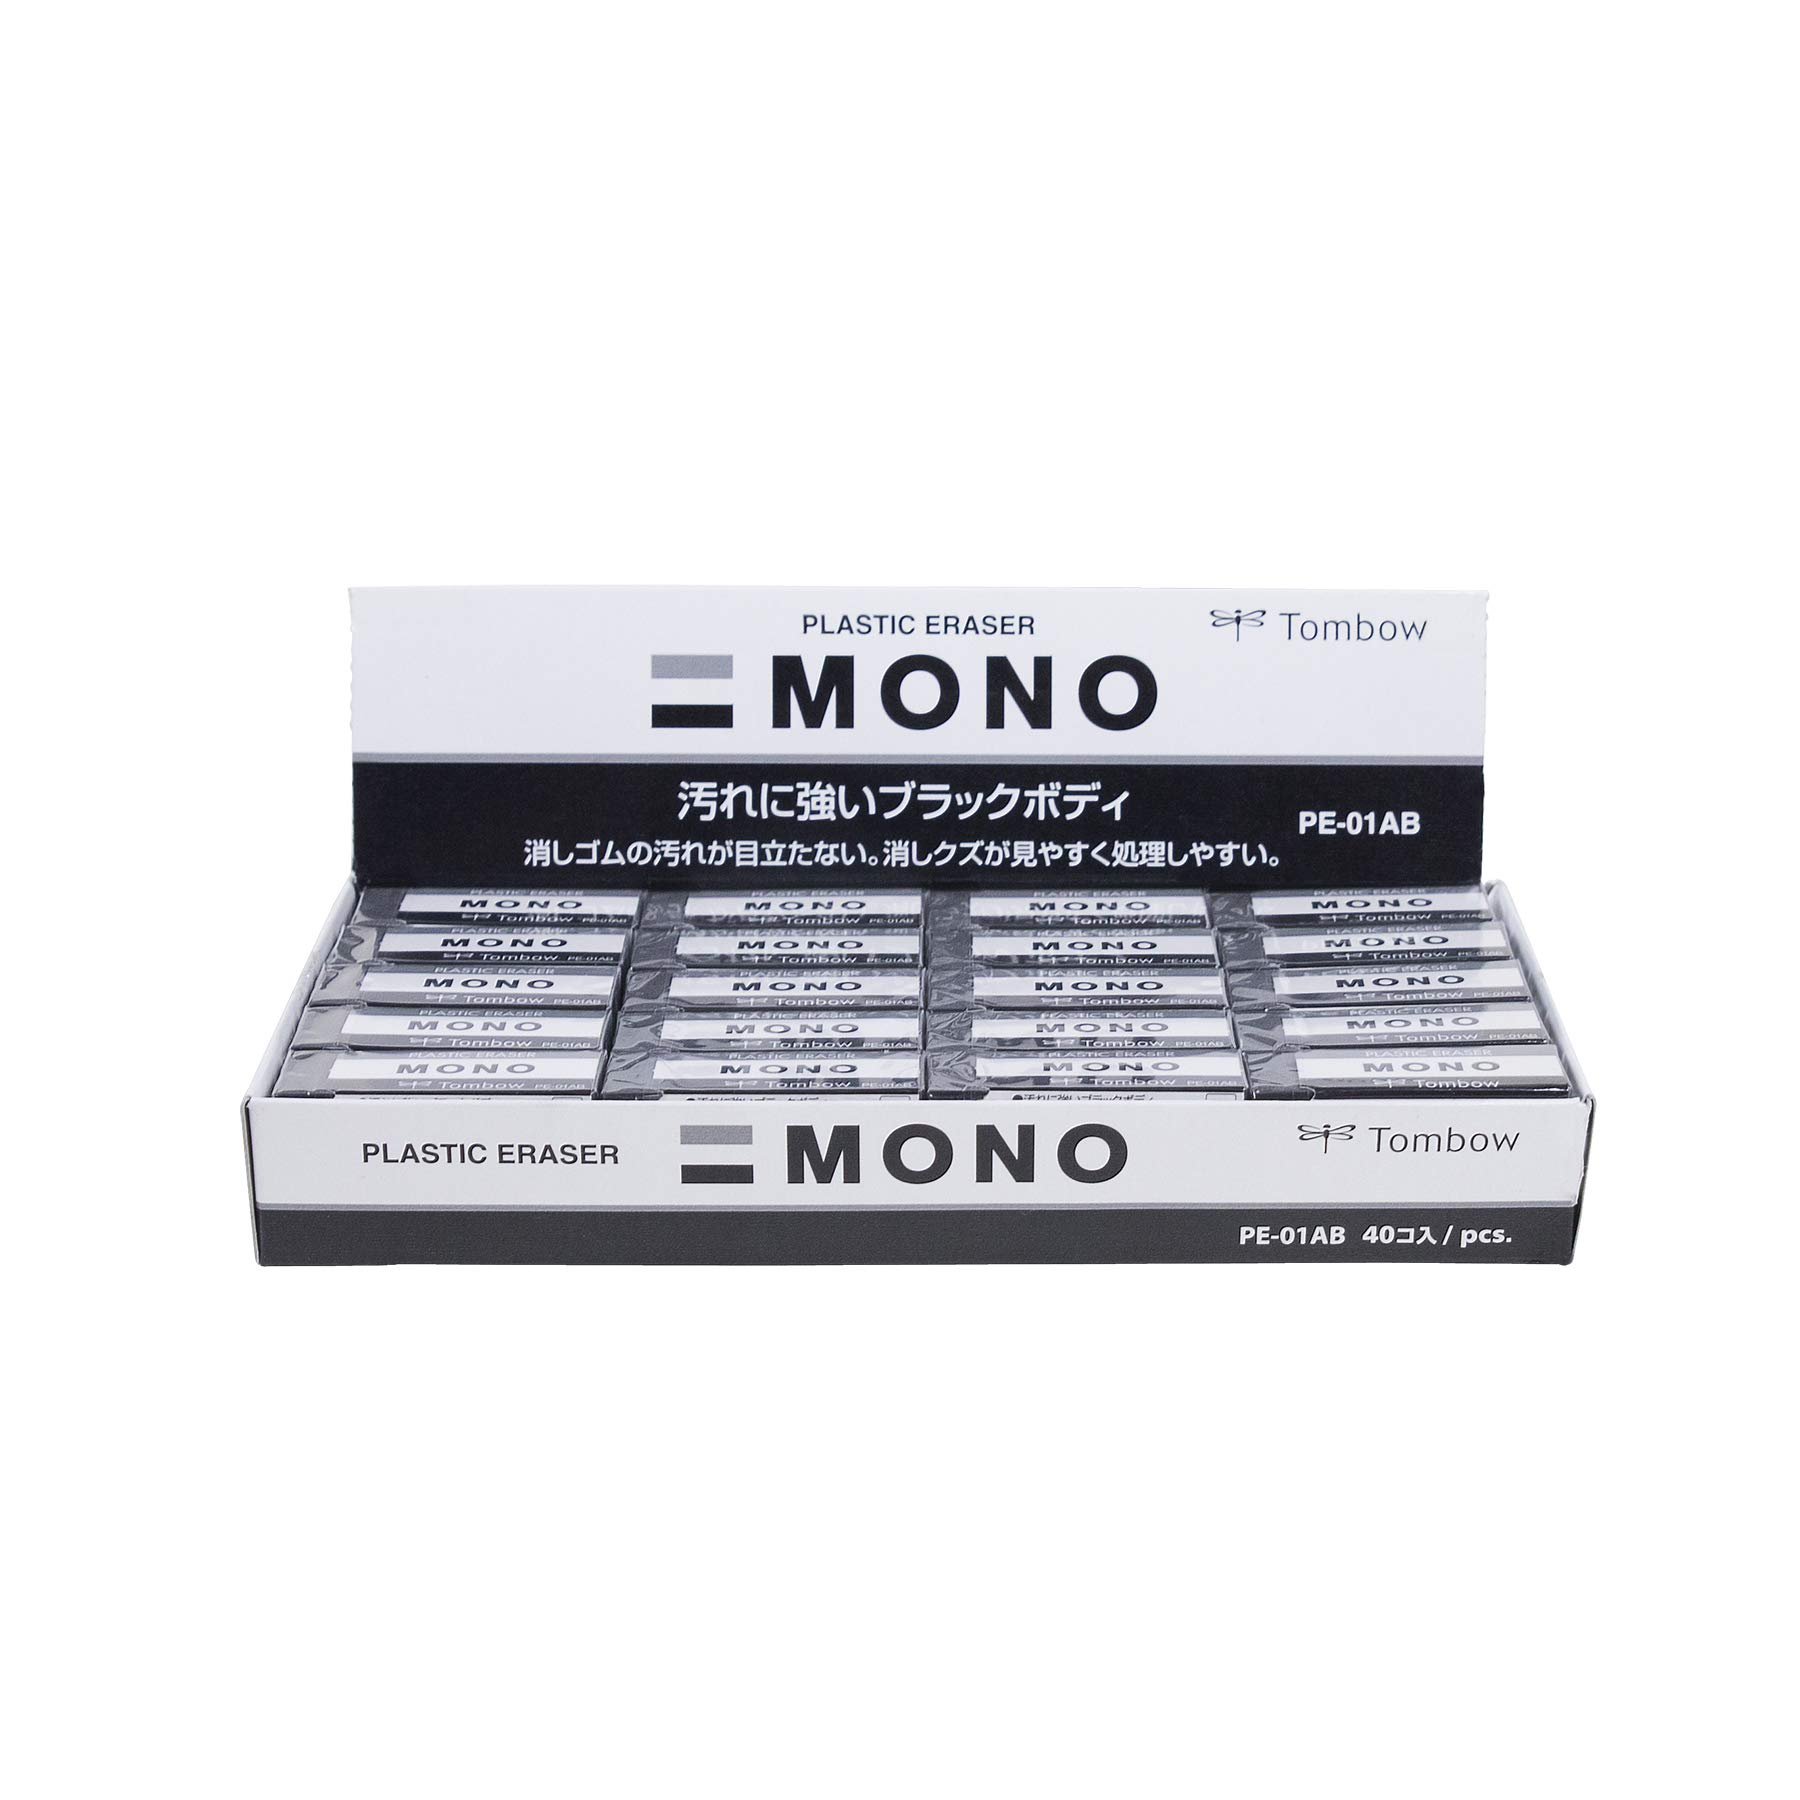 TOMBOW Mono Eraser, Black, Small, 40 PC Box, Pack, Piece by Tombow (Image #3)